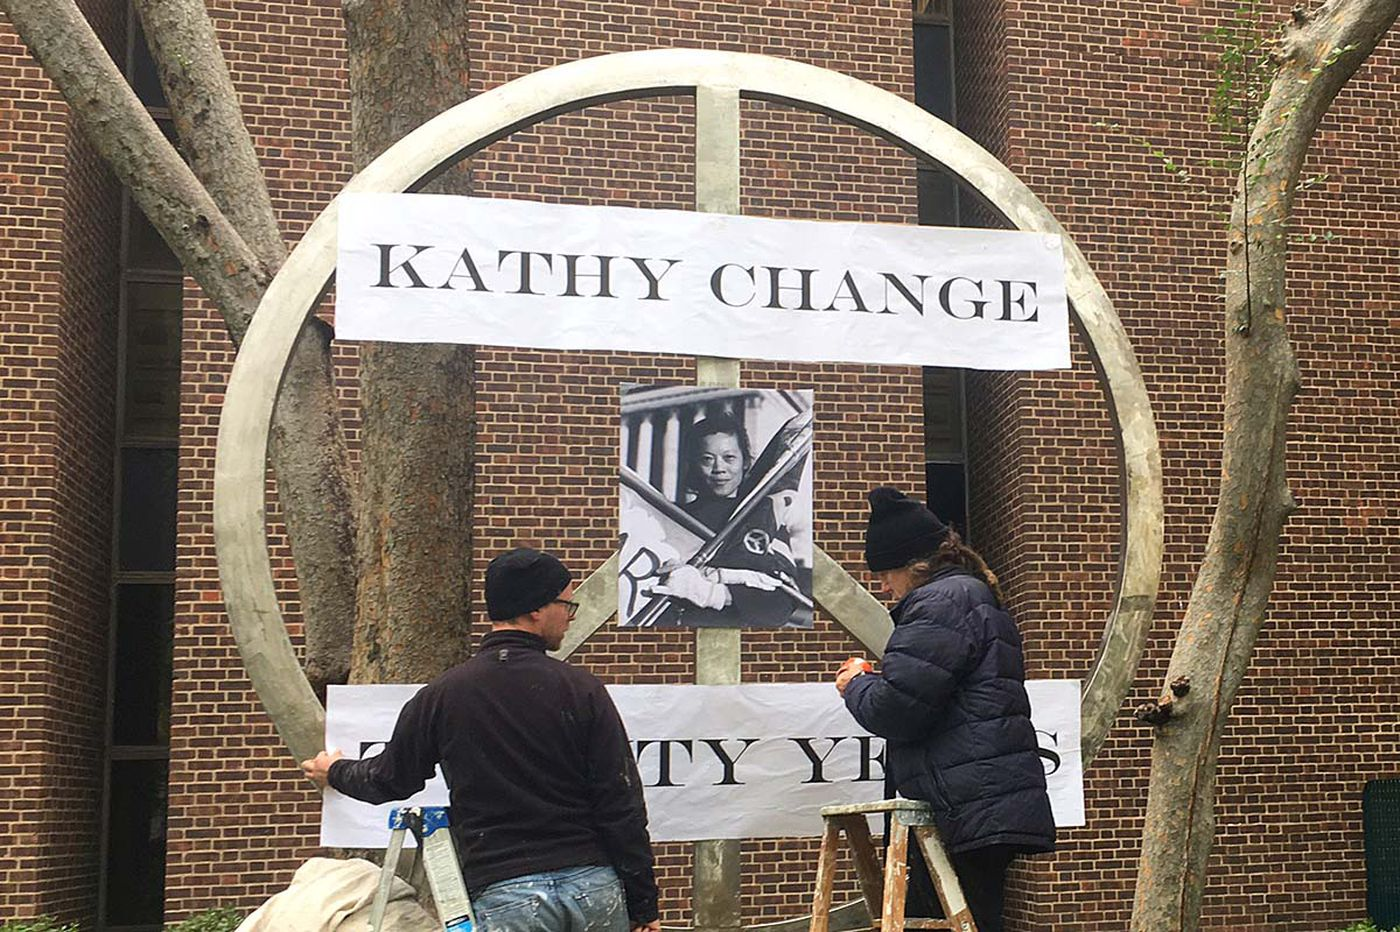 Activist Kathy Chang, who set herself afire 20 years ago, remembered at Penn